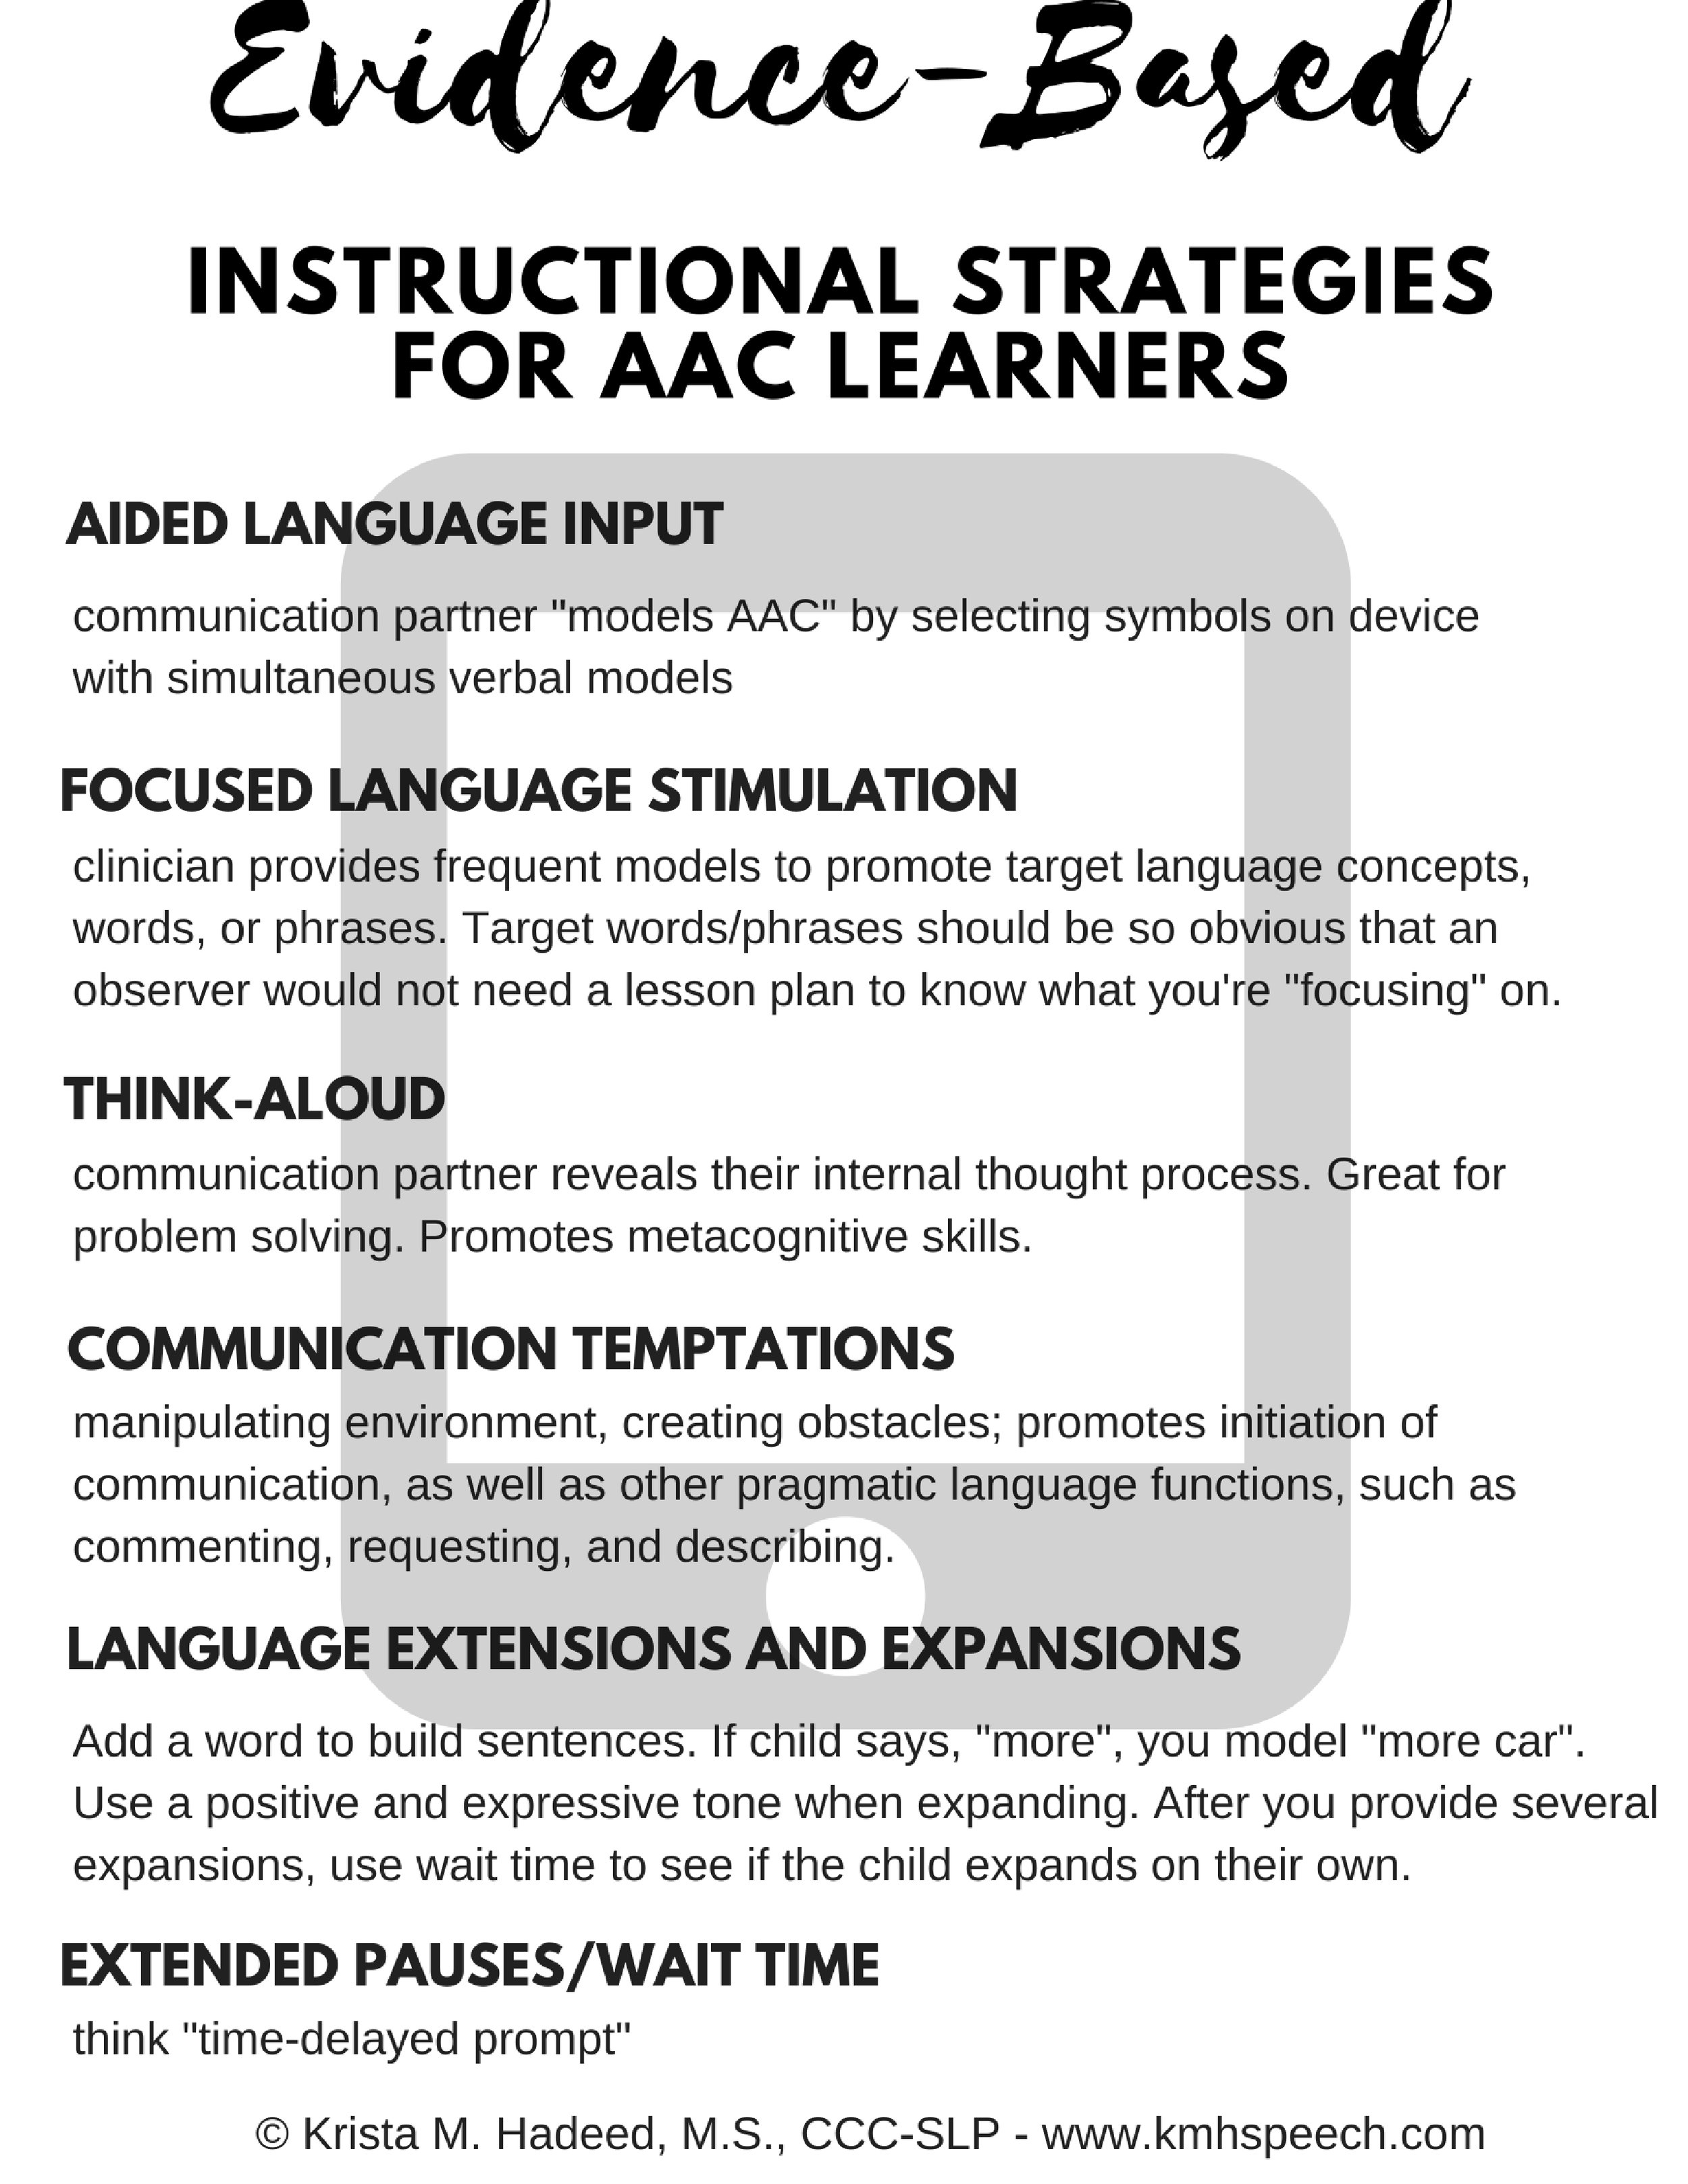 Here's a link to download this file in PDF format...  Evidence-Based AAC Strategies